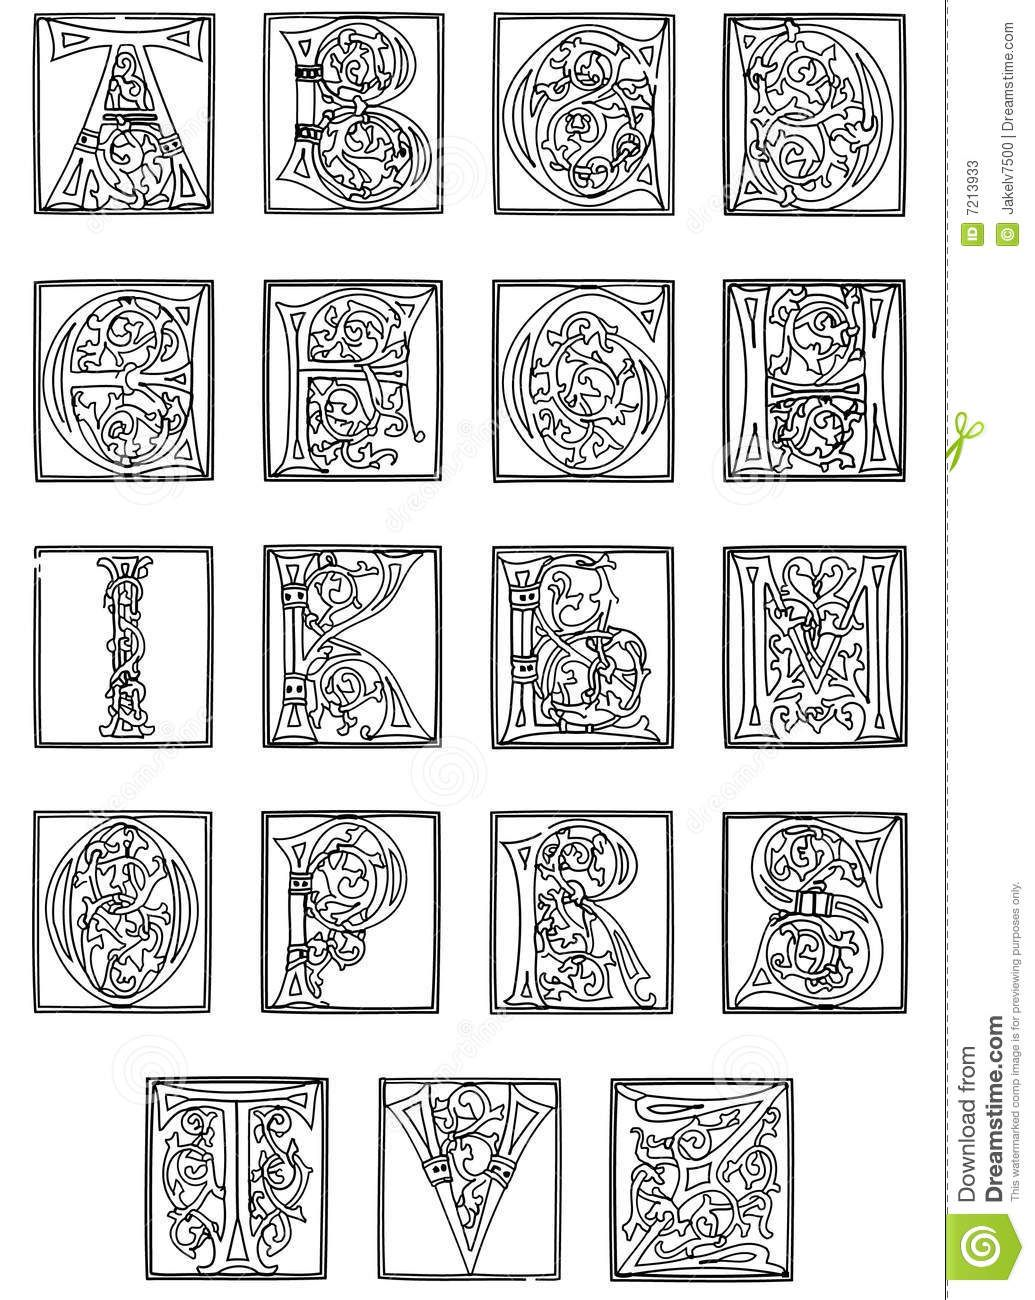 Me Val Illuminated Letters Coloring Pages